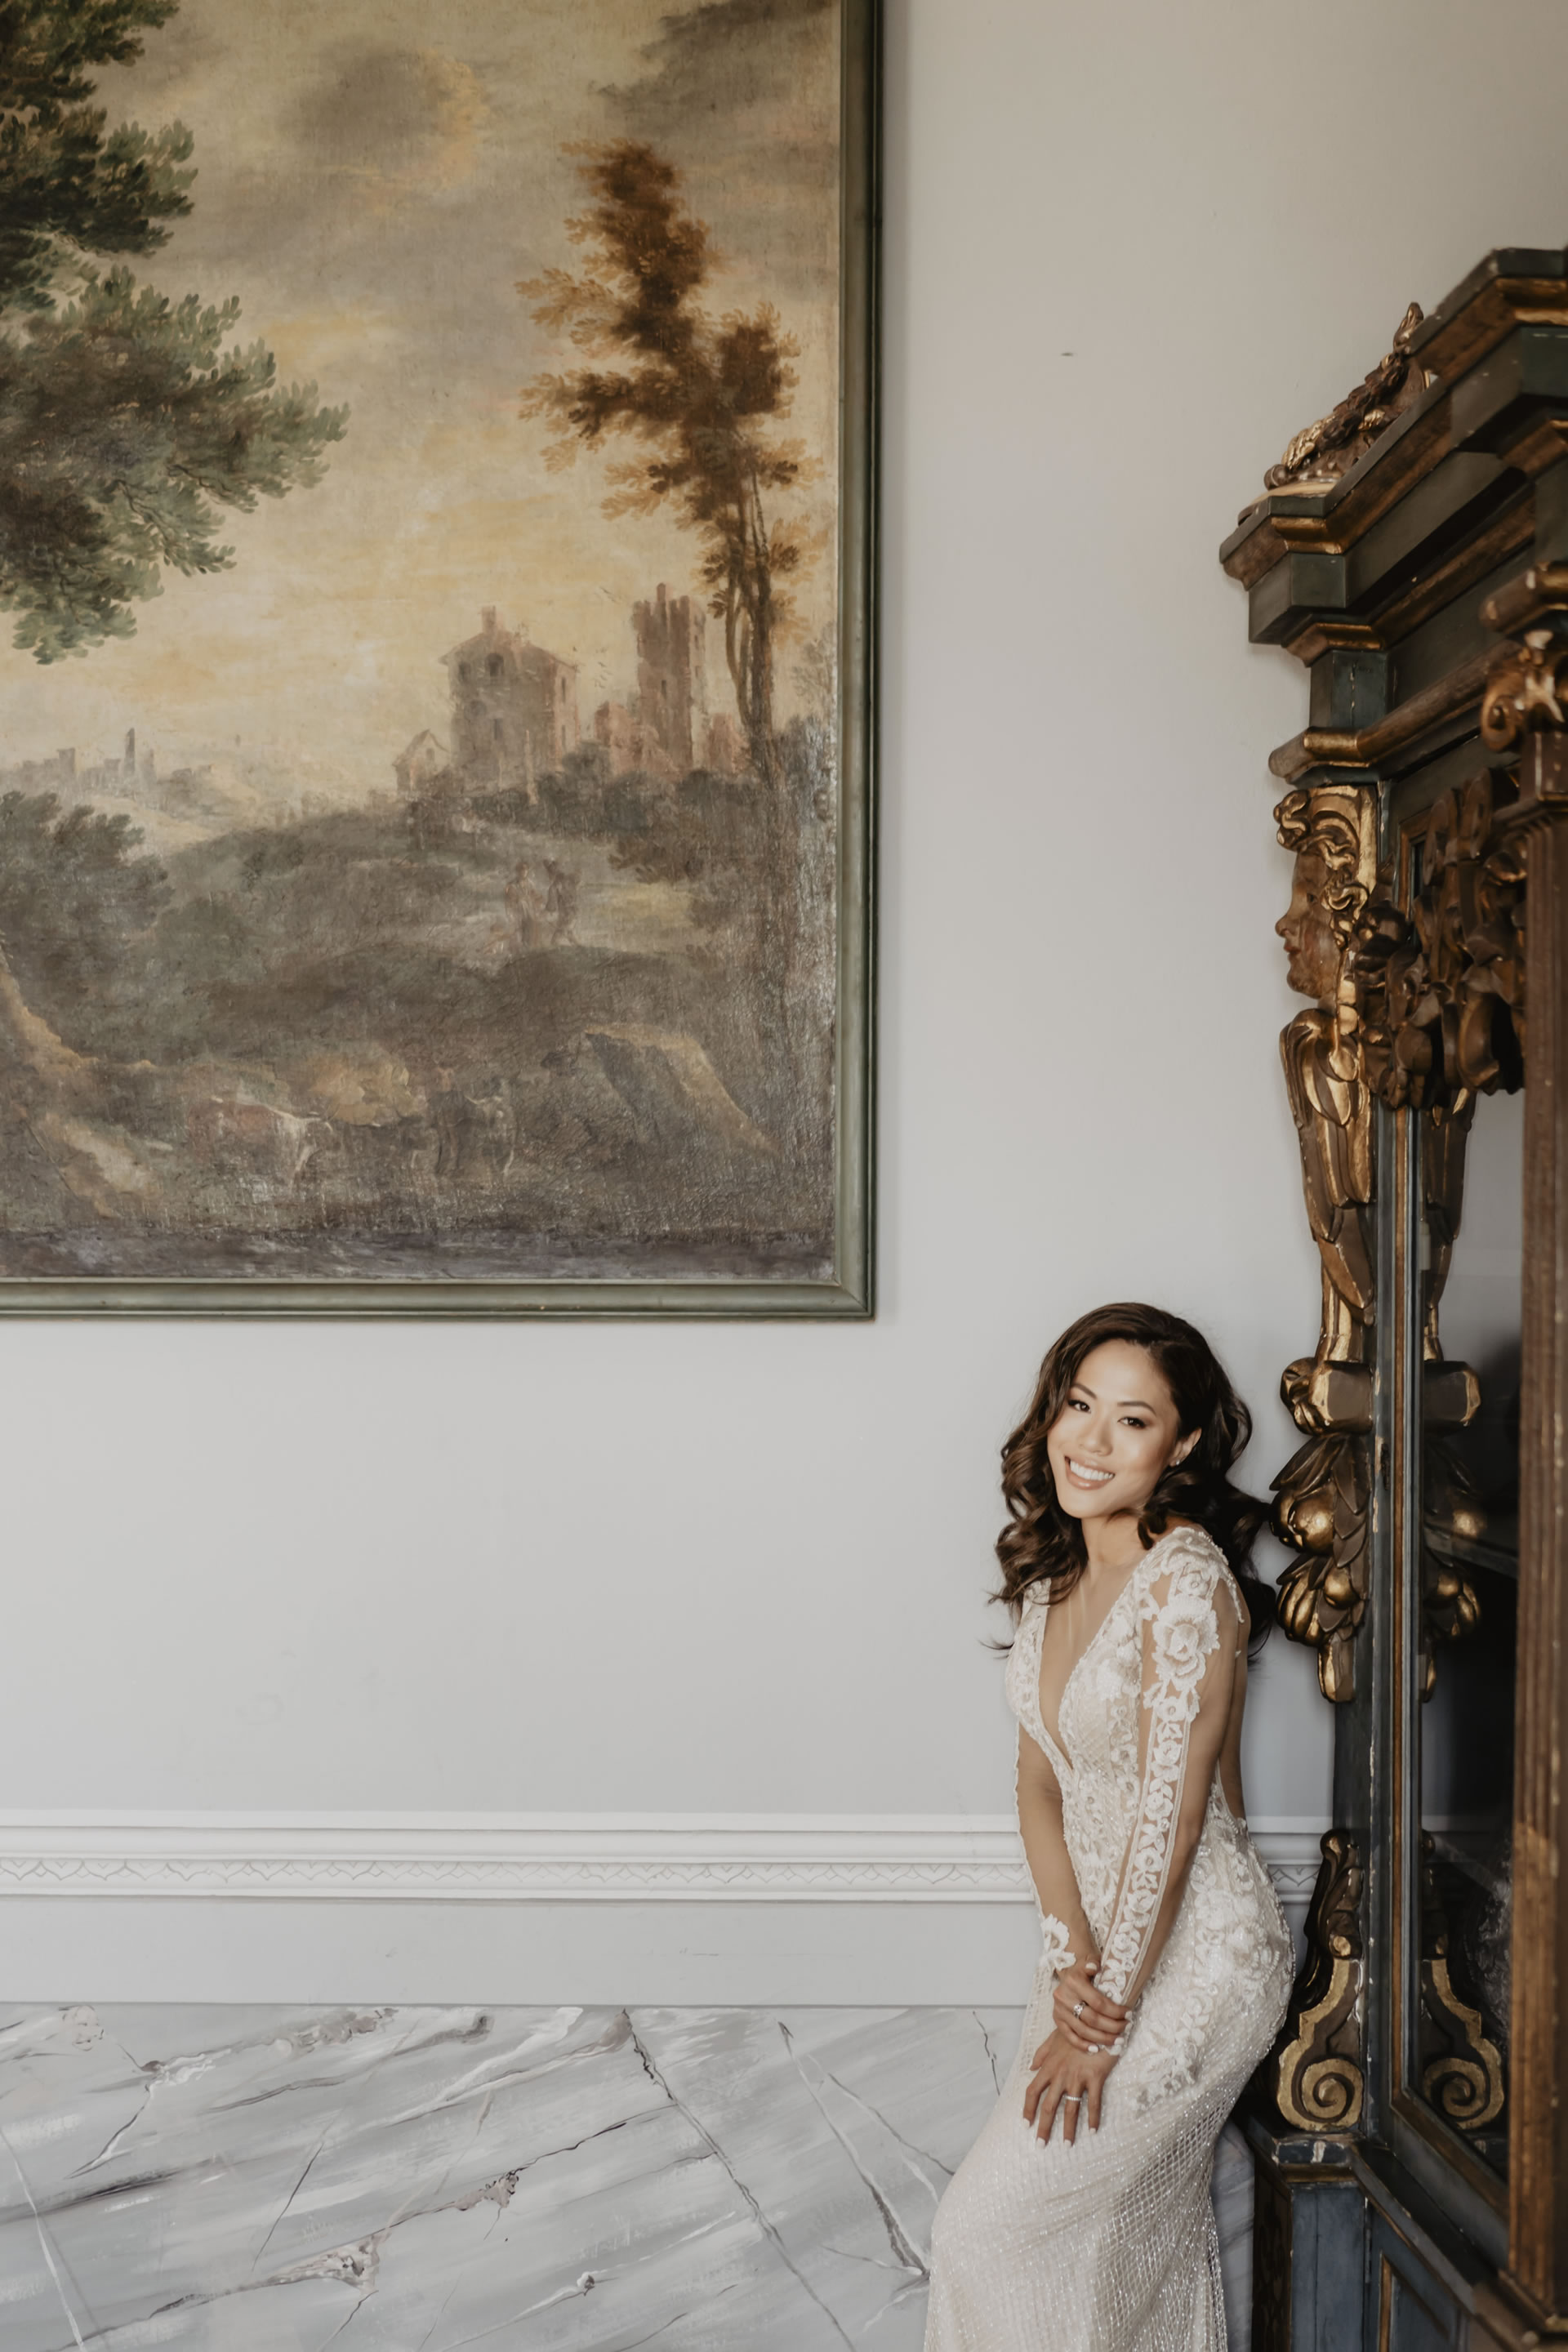 - 39 :: From Los angeles to Florence: a glamour asiatic wedding :: Luxury wedding photography - 38 ::  - 39